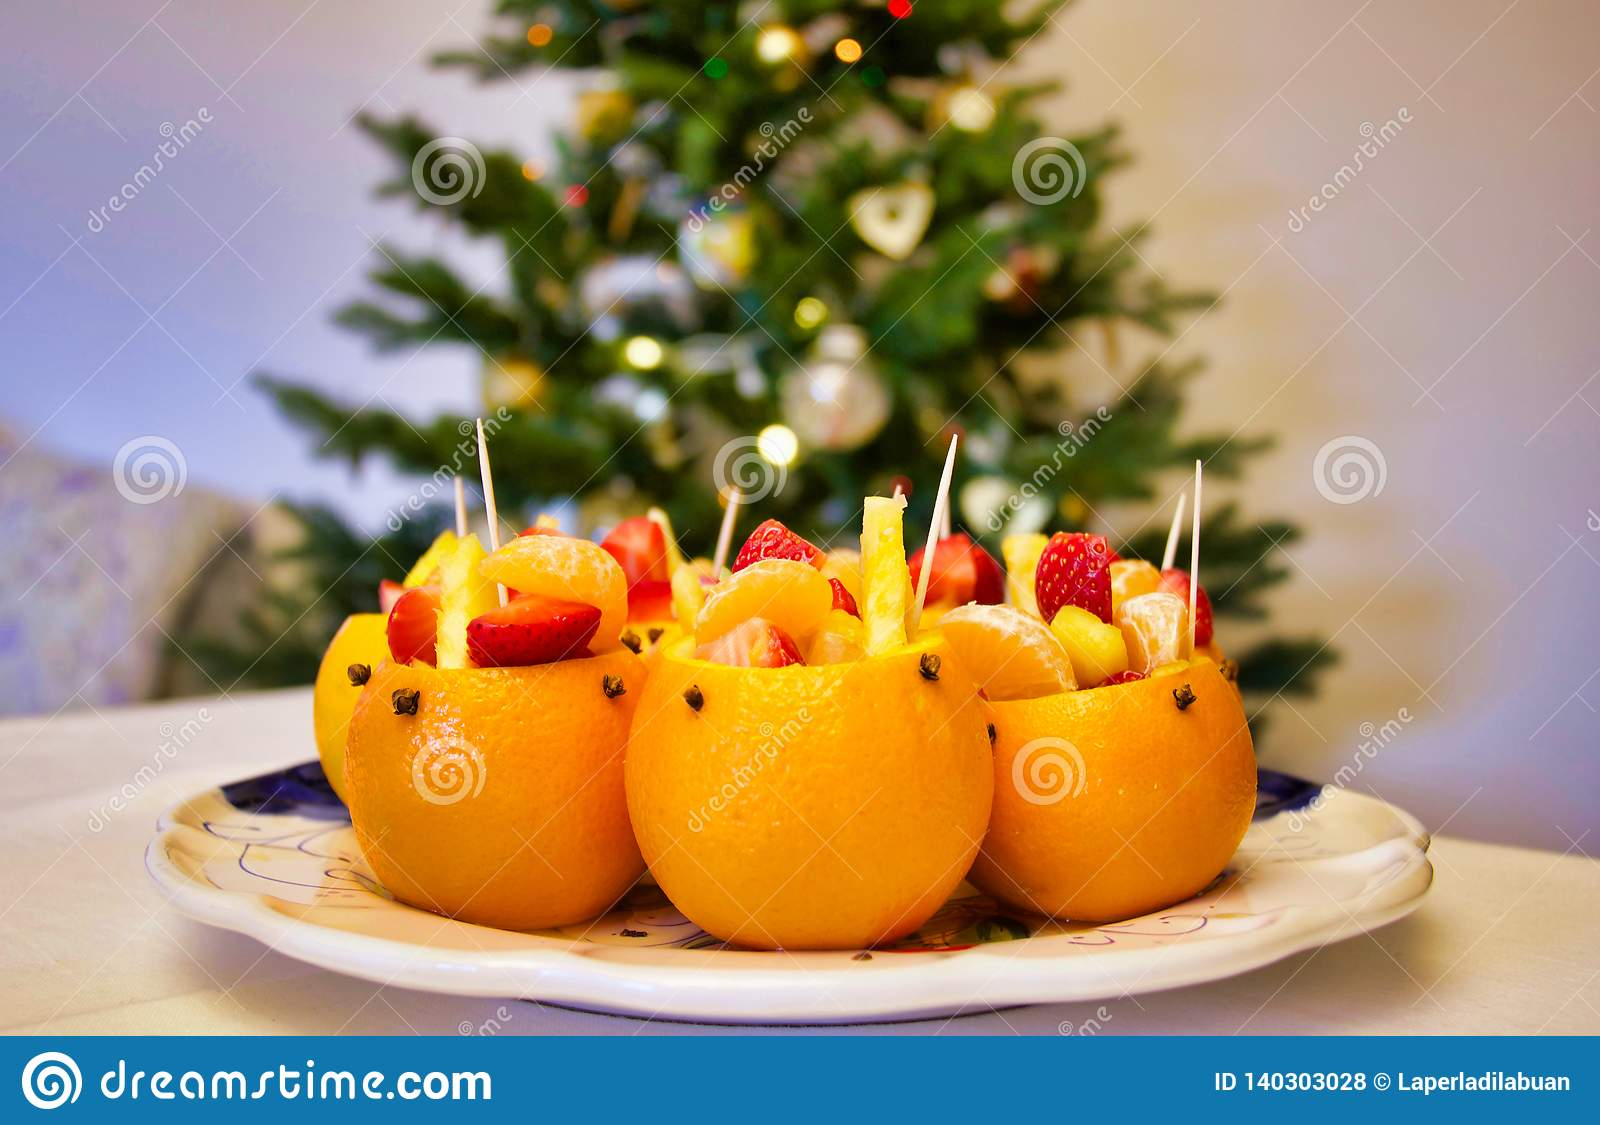 Stuffed Oranges With Fruit Salad On A Christmas Table Stock Photo